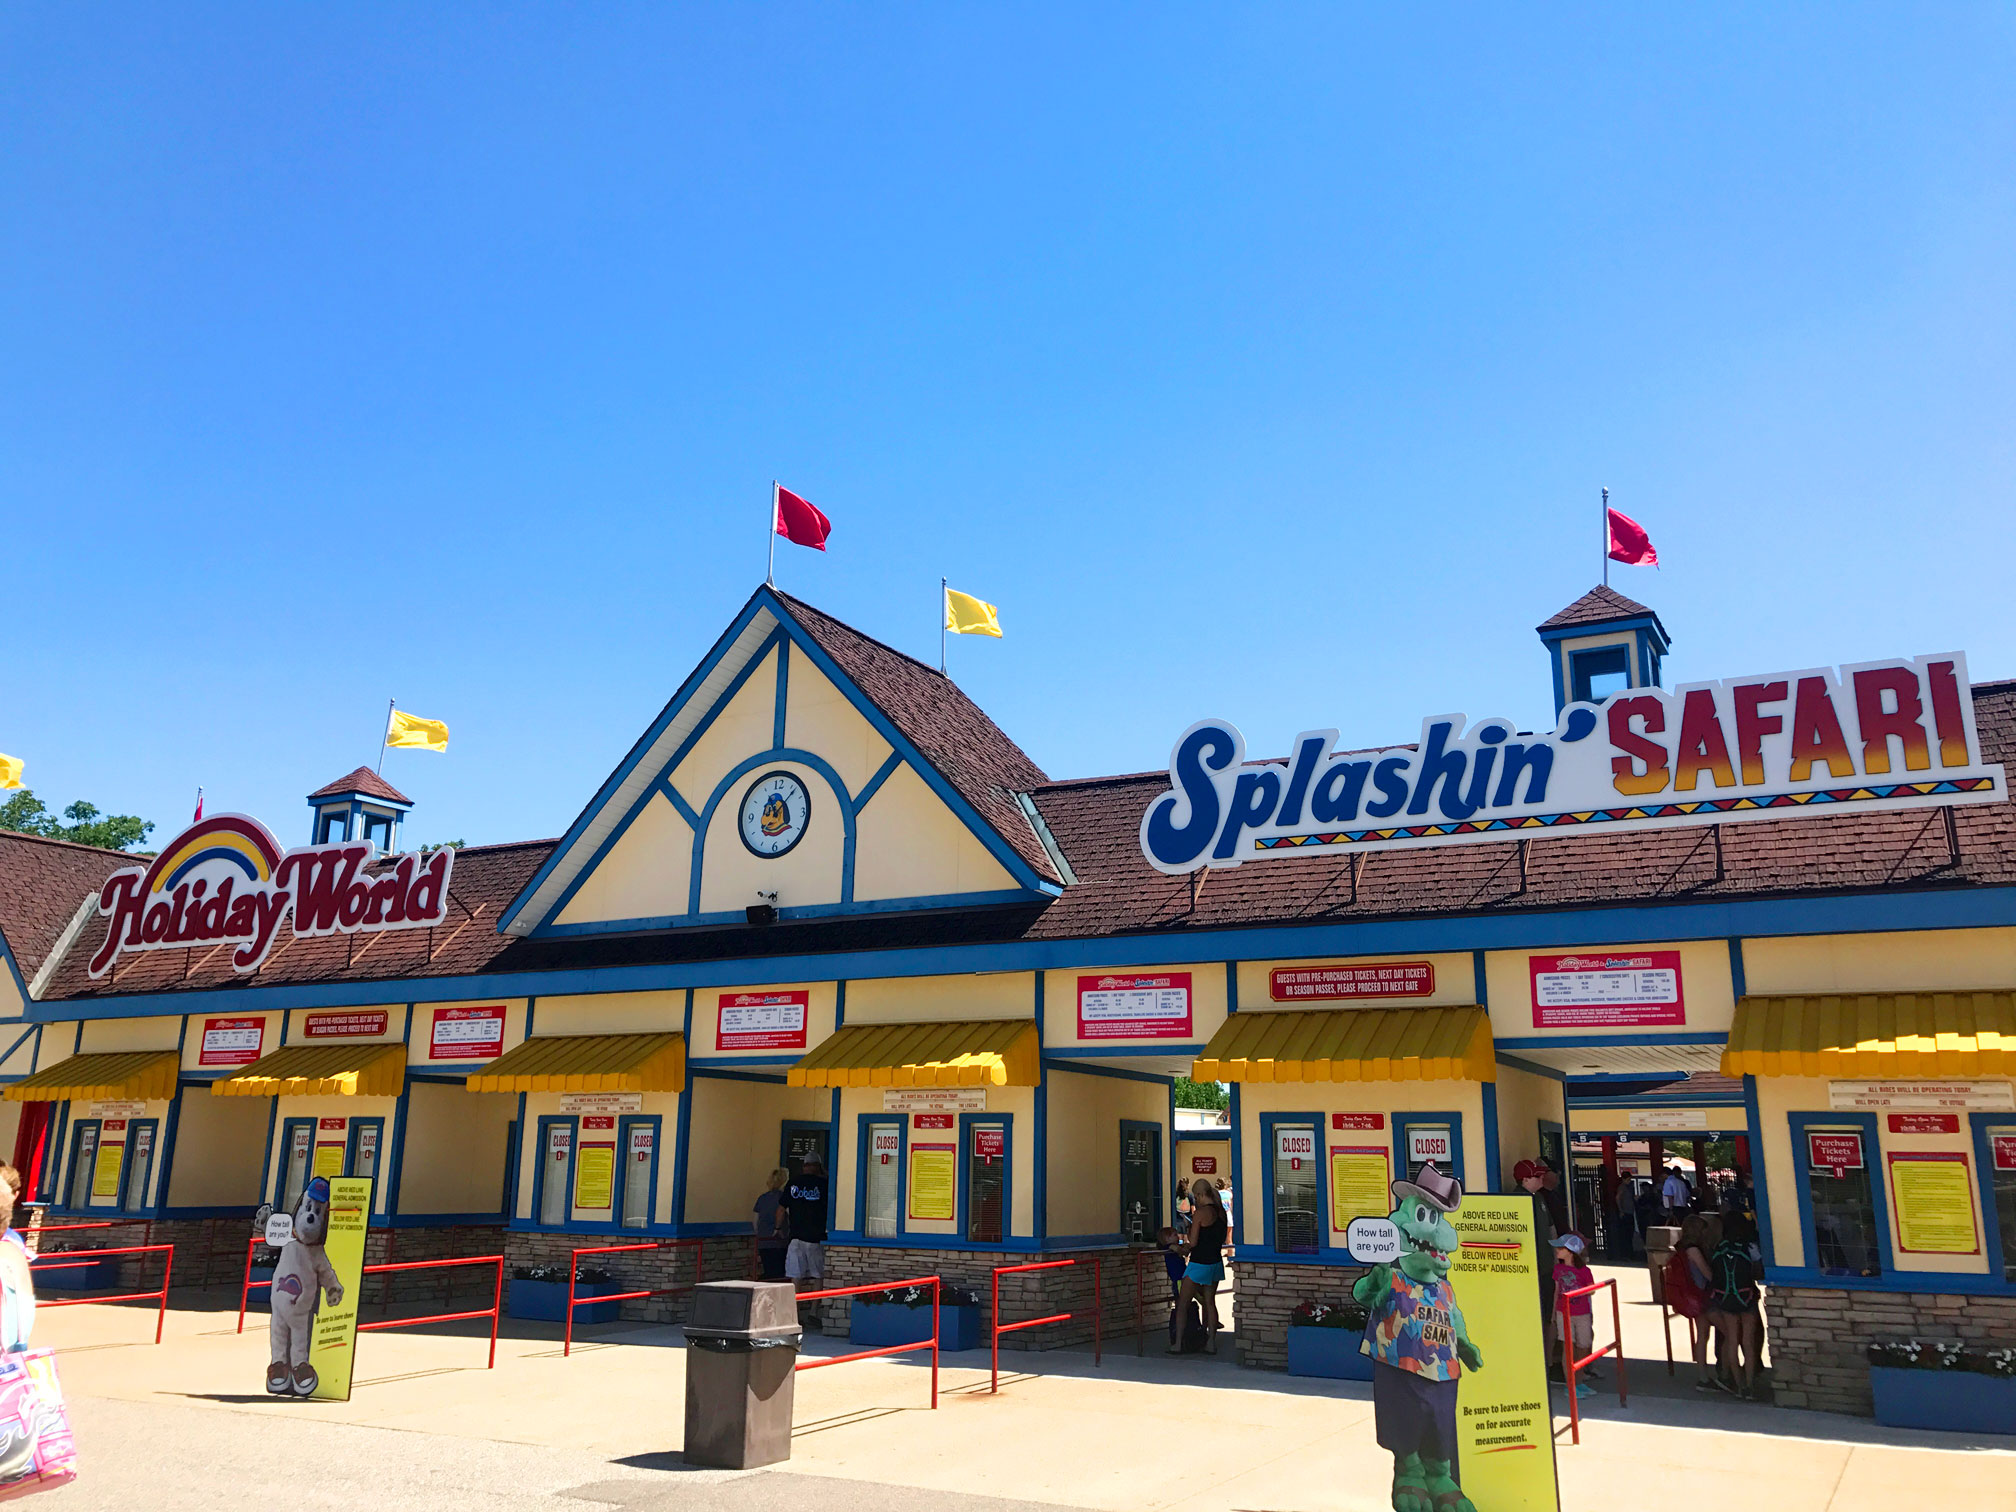 Ultimate guide to Holiday World in Santa Claus, Indiana